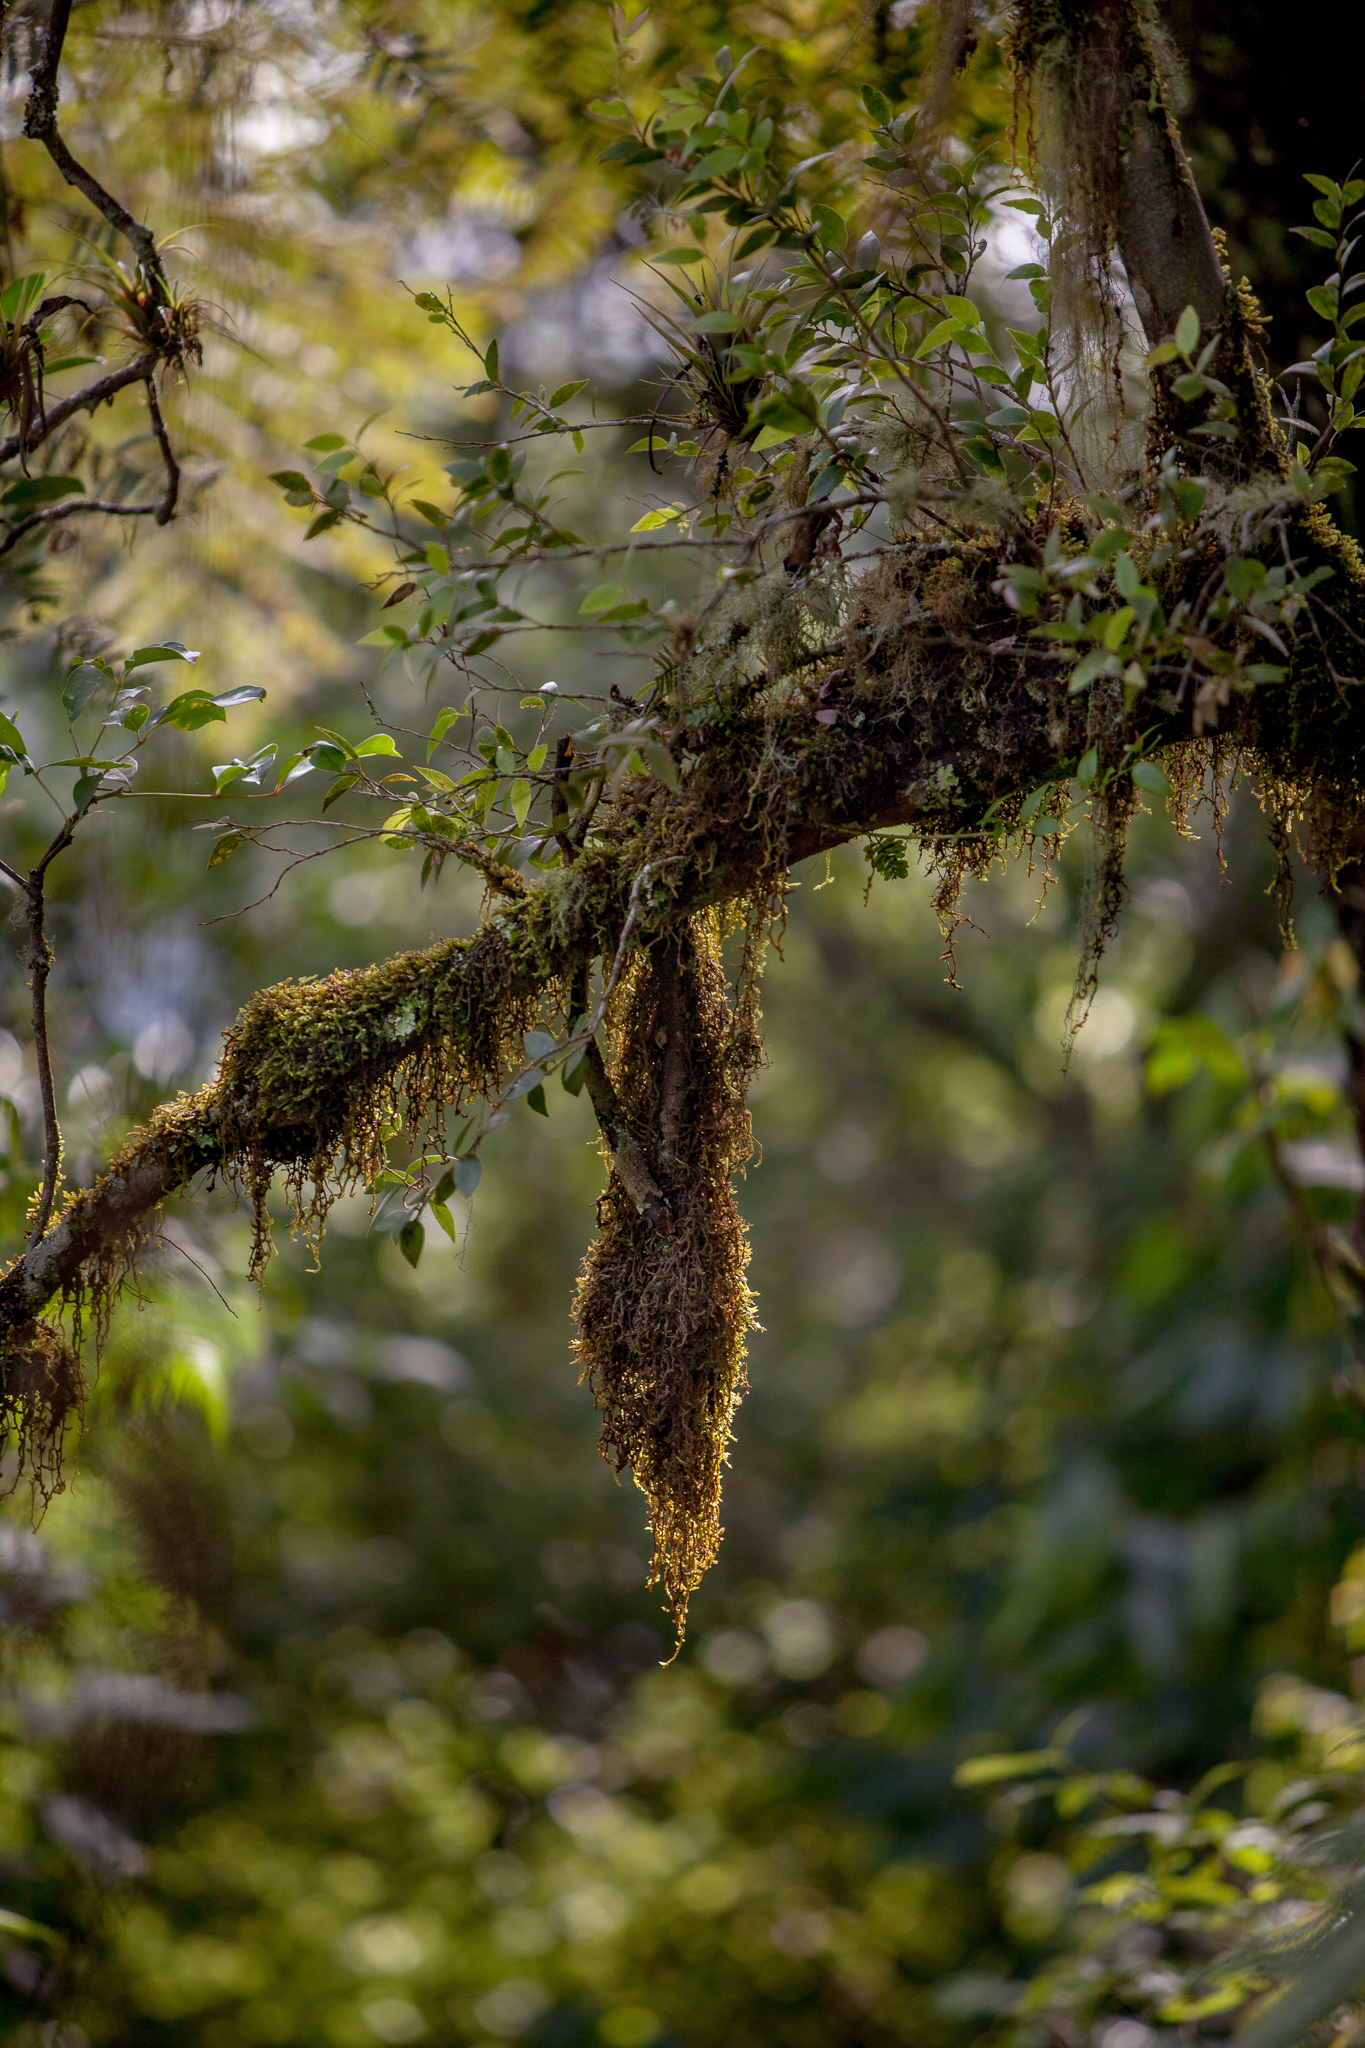 Moss hangs from the branch of a typical cloud forest tree, Veracruz Mexico.